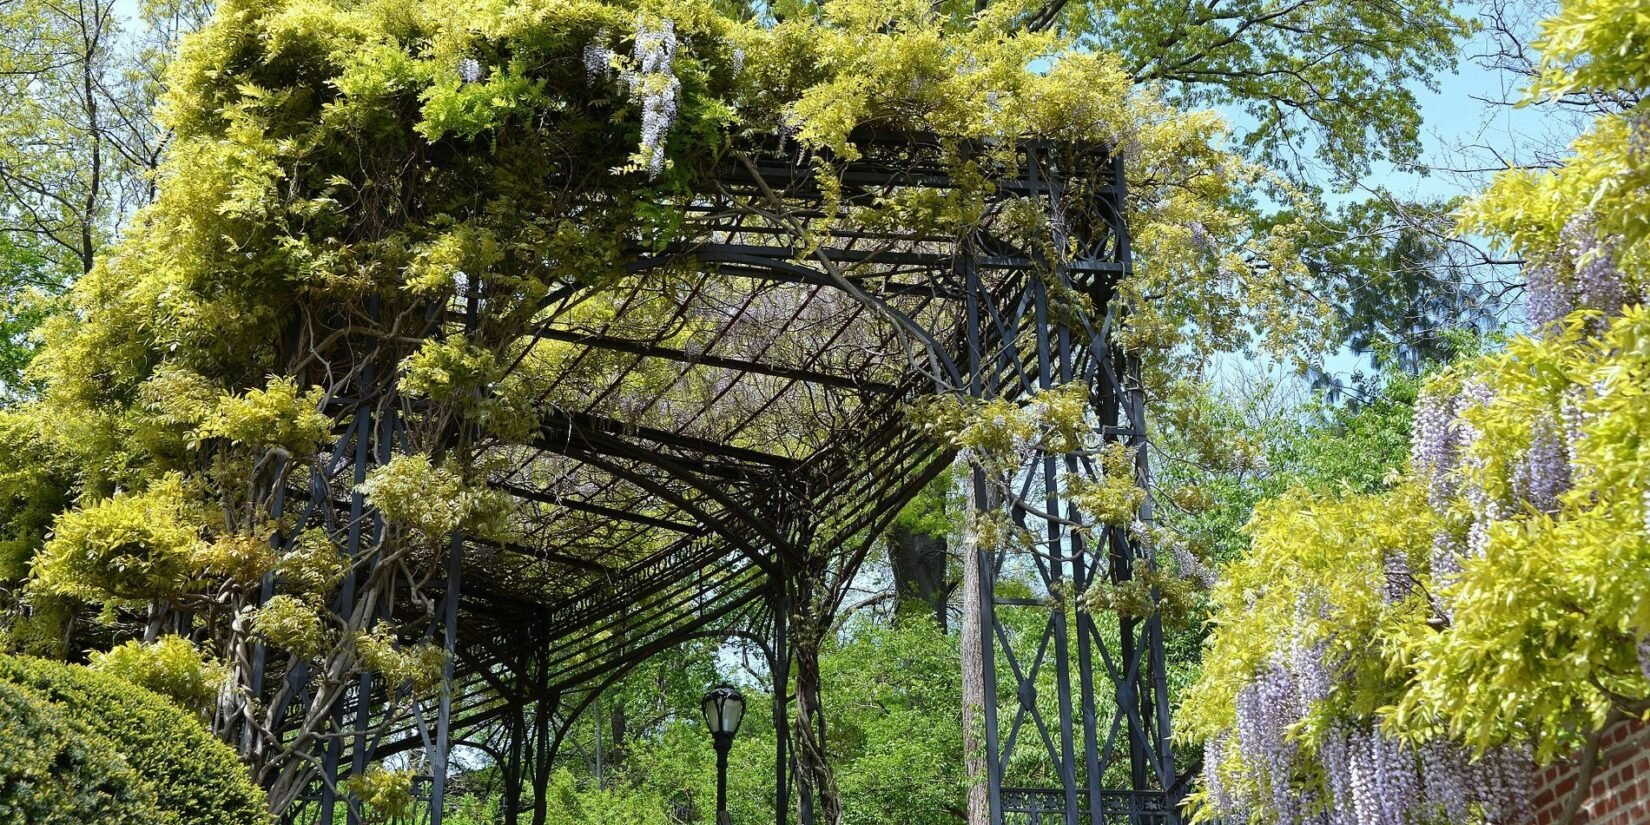 The curve at the end of the pergola festooned with deep greenery.